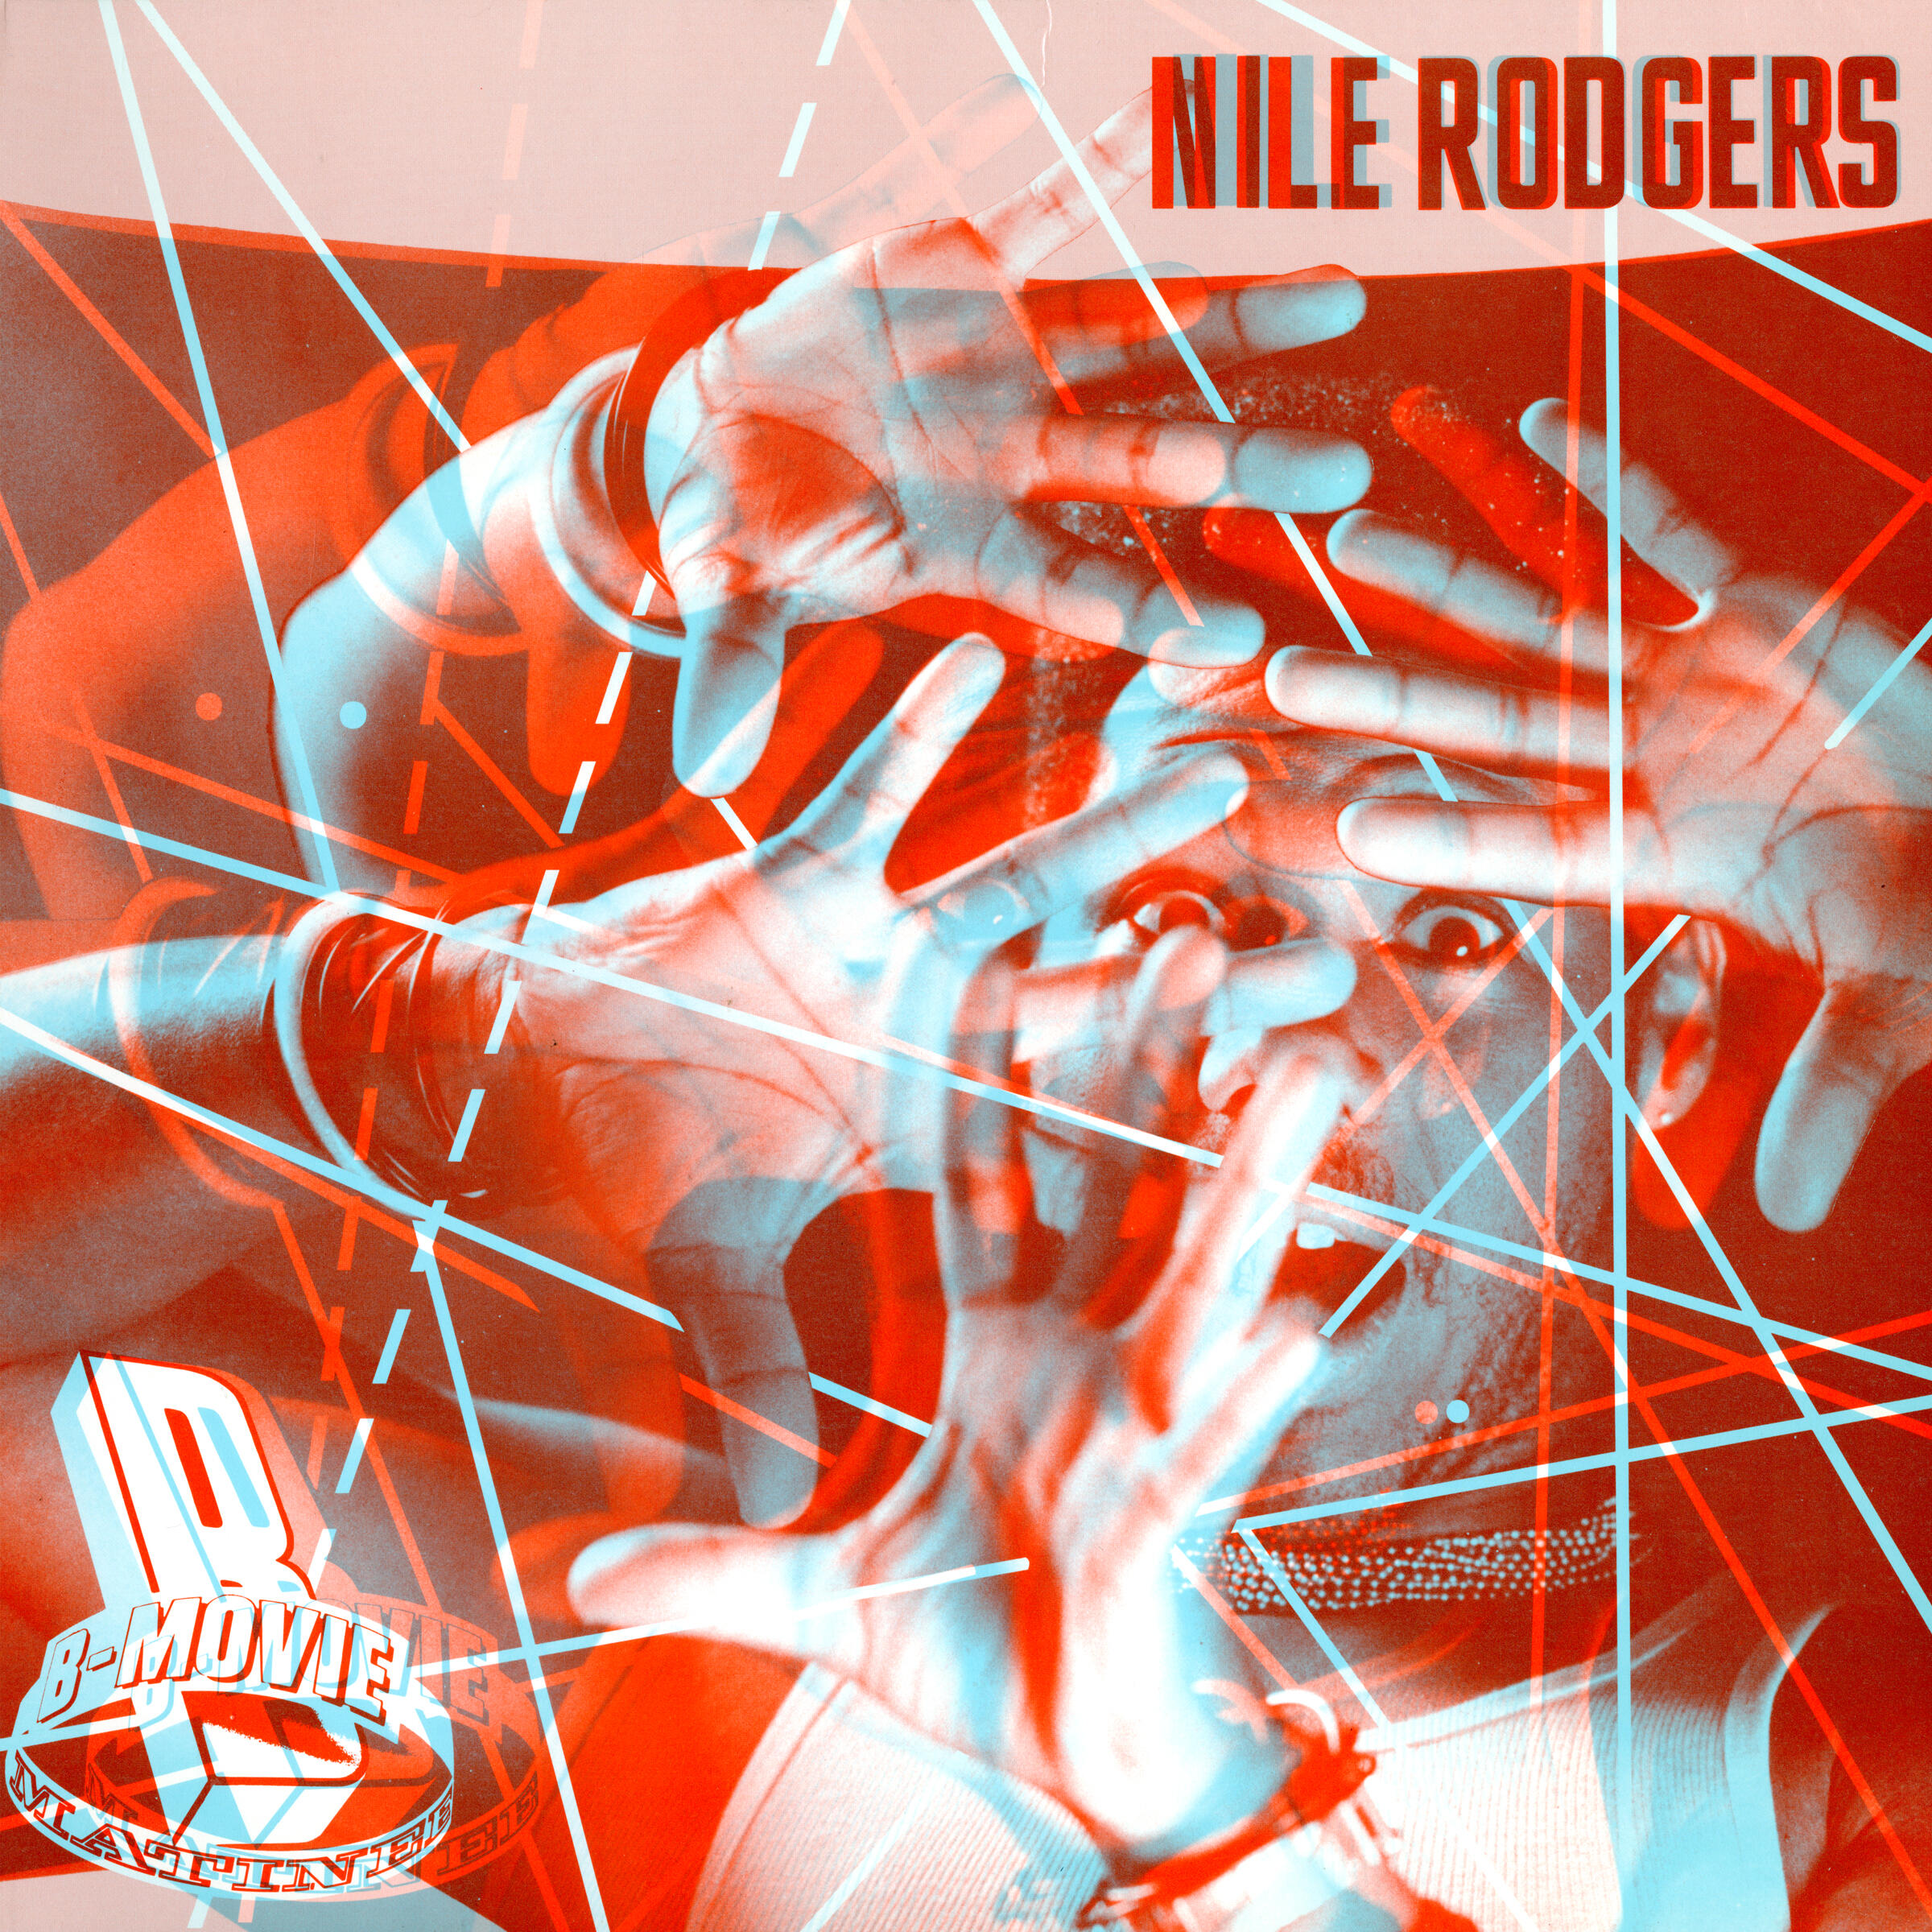 Image Result For Nile Rodgers